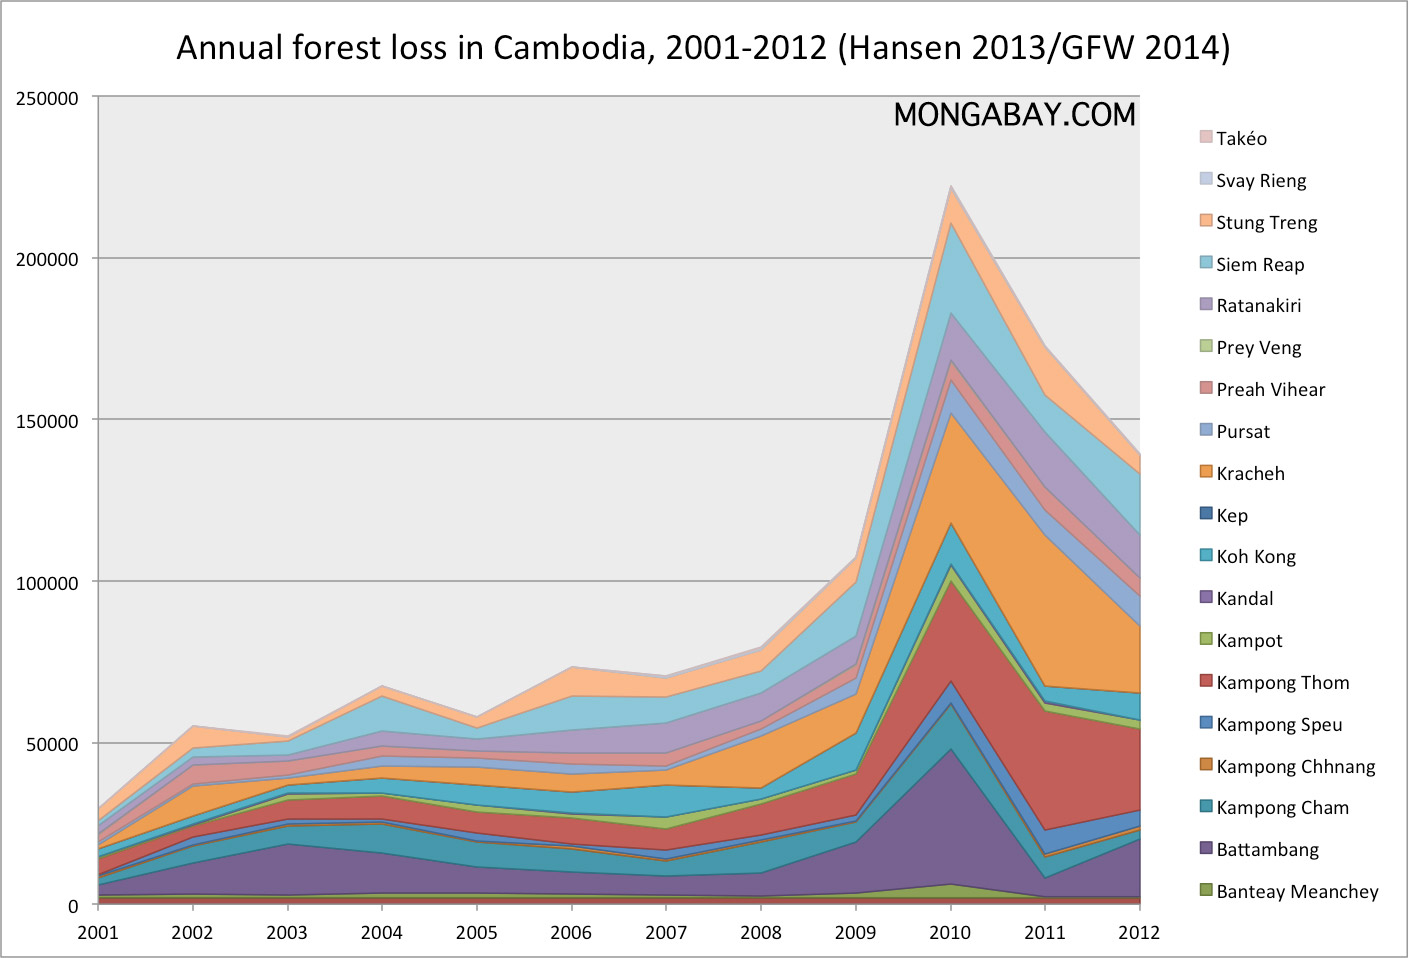 Annual forest loss in Cambodia 2001-2012 http://rainforests.mongabay.com/20cambodia.htm